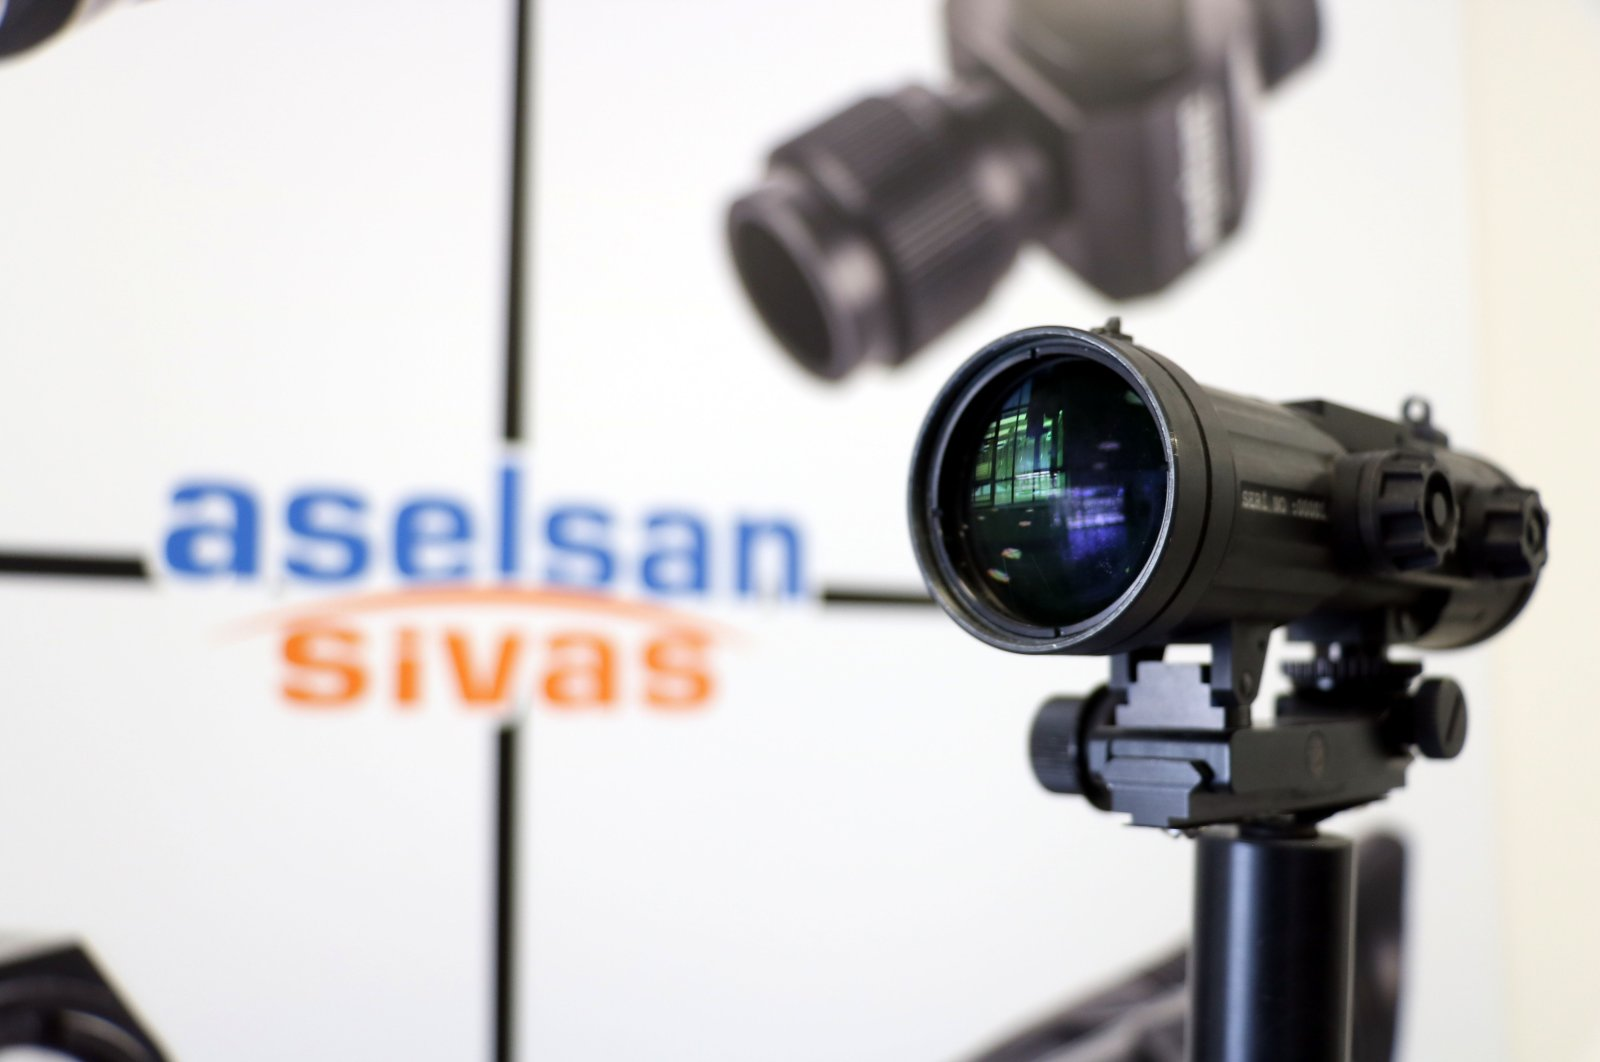 Lens systems produced by ASELSAN displayed in the company's factory in Sivas, Turkey, May 14, 2020. (IHA Photo)